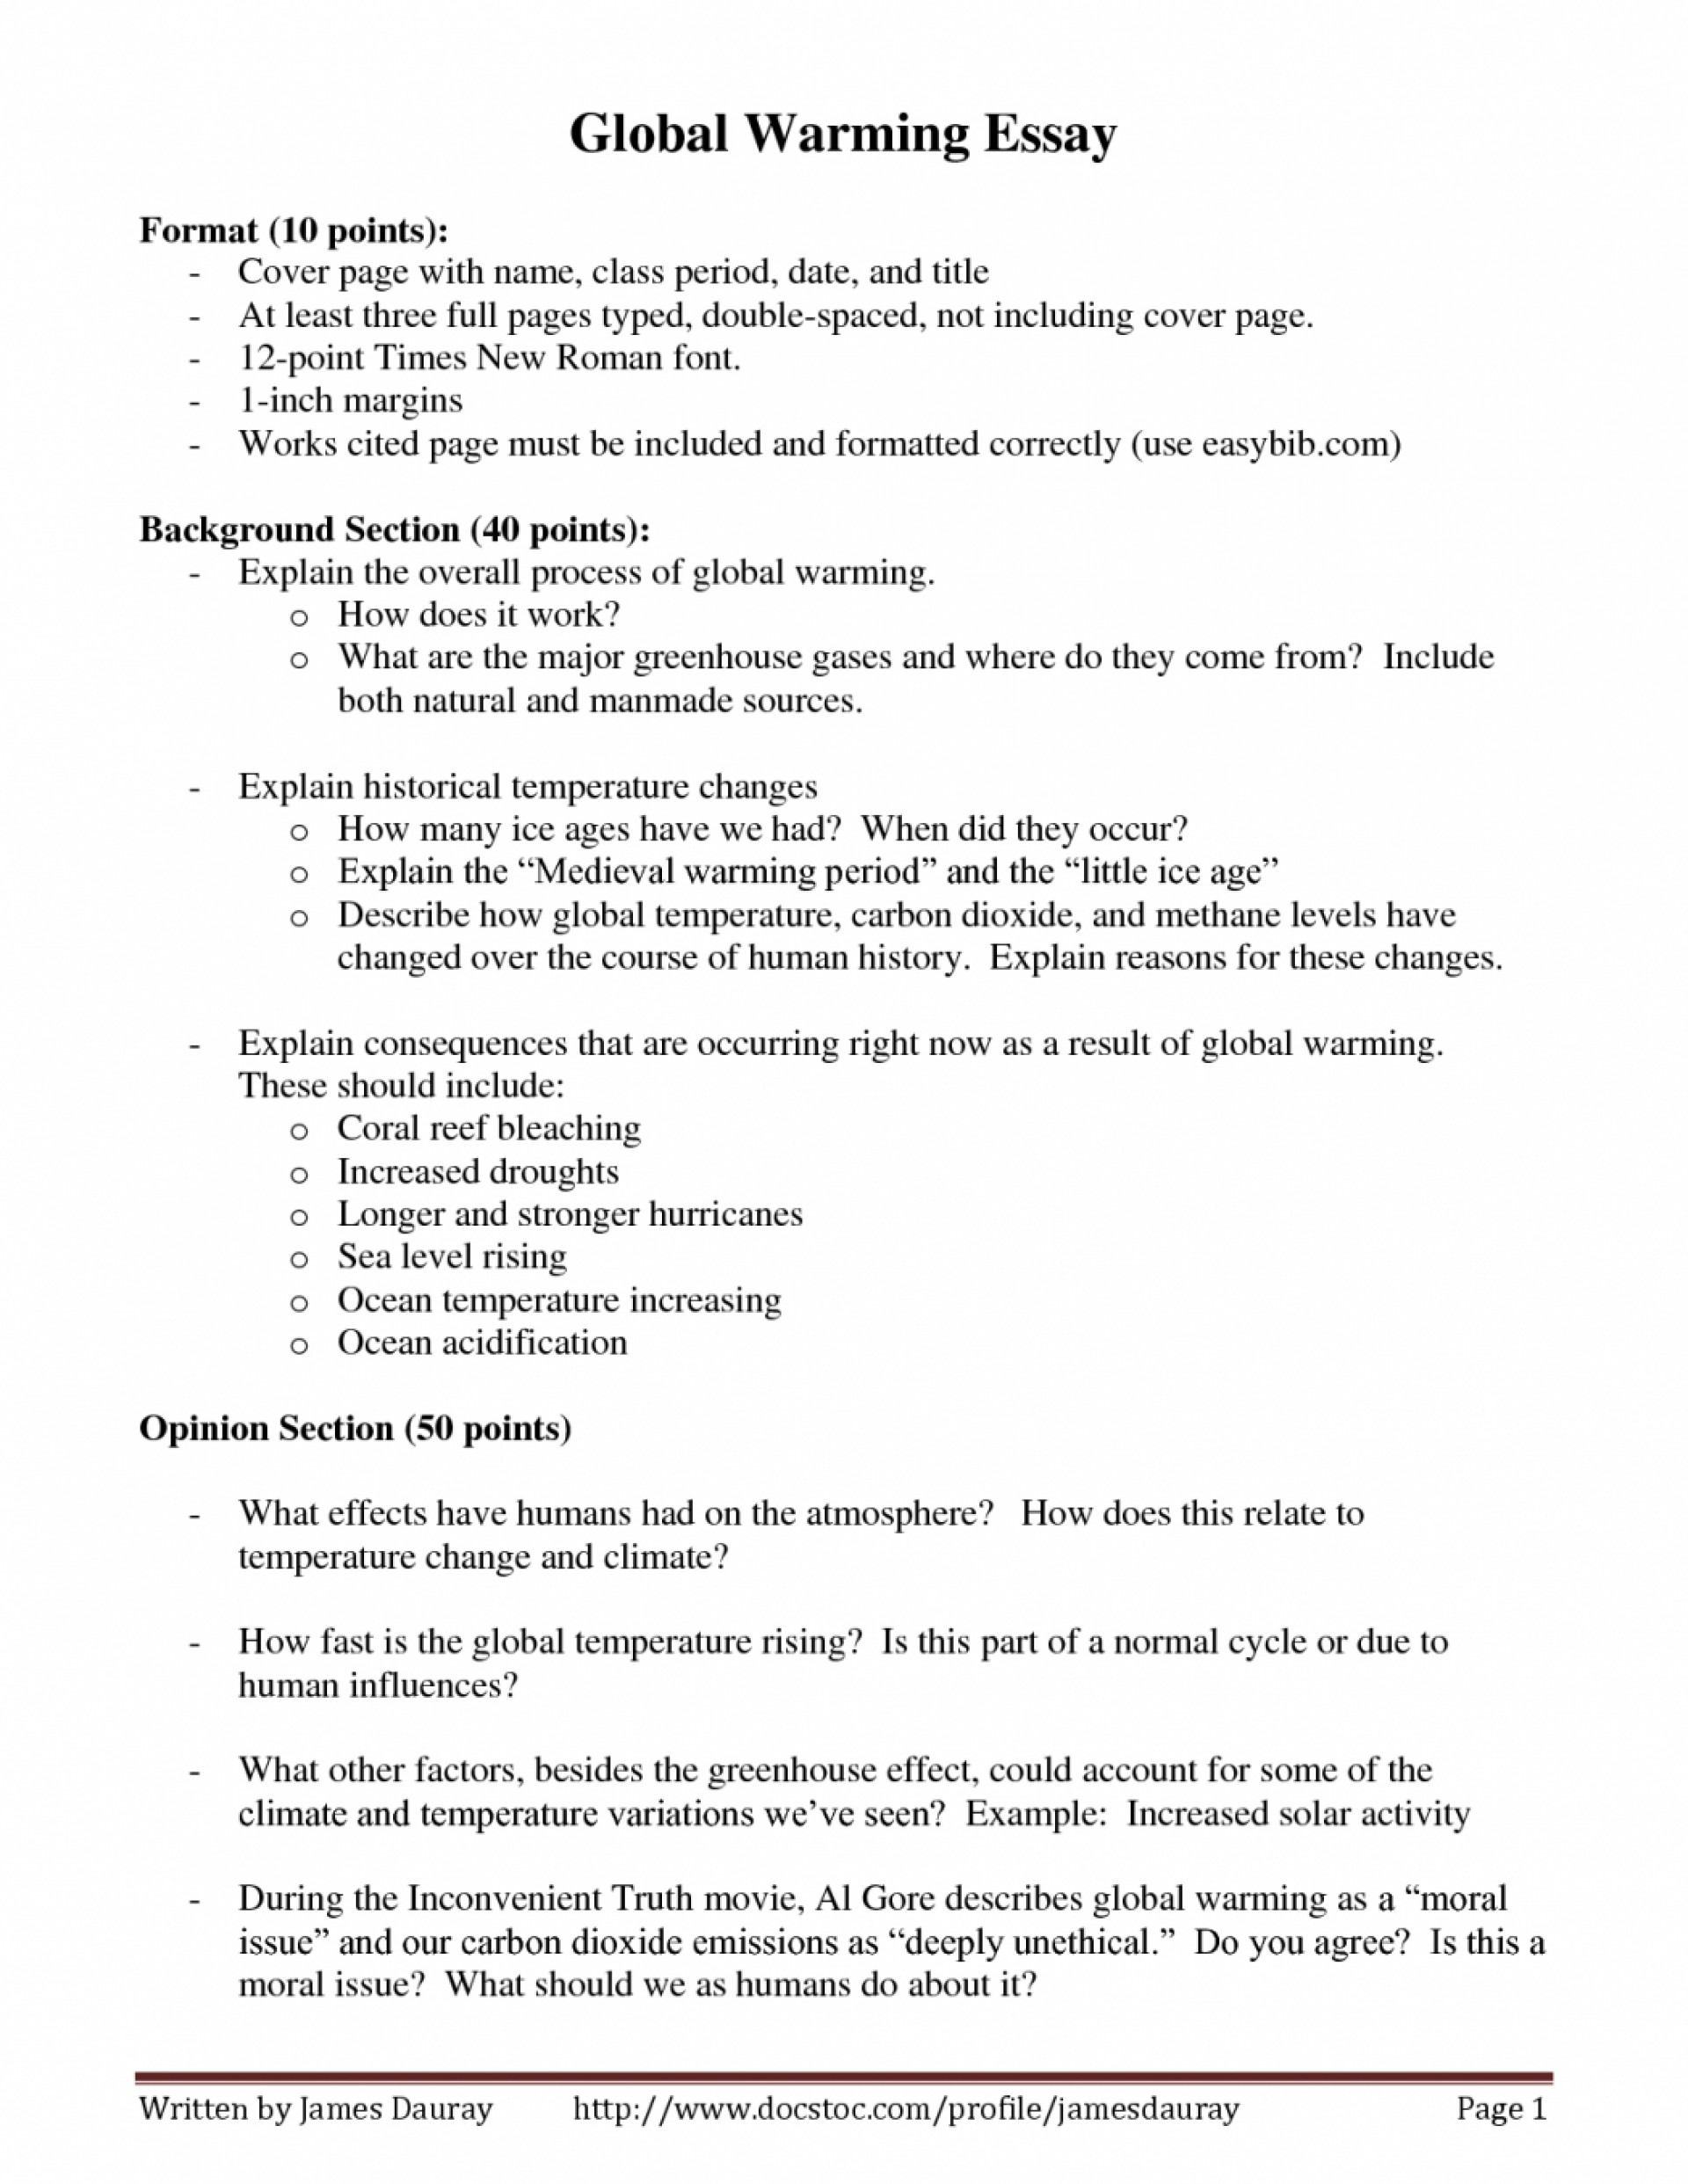 004 Essay Example On Effects Of Global Warming Custom Paper Academic Writing Best Essays Causes L And Report In Hindi Pdf Topic An Argumentative Impressive With Introduction Conclusion Greenhouse Effect 600 Words 1920